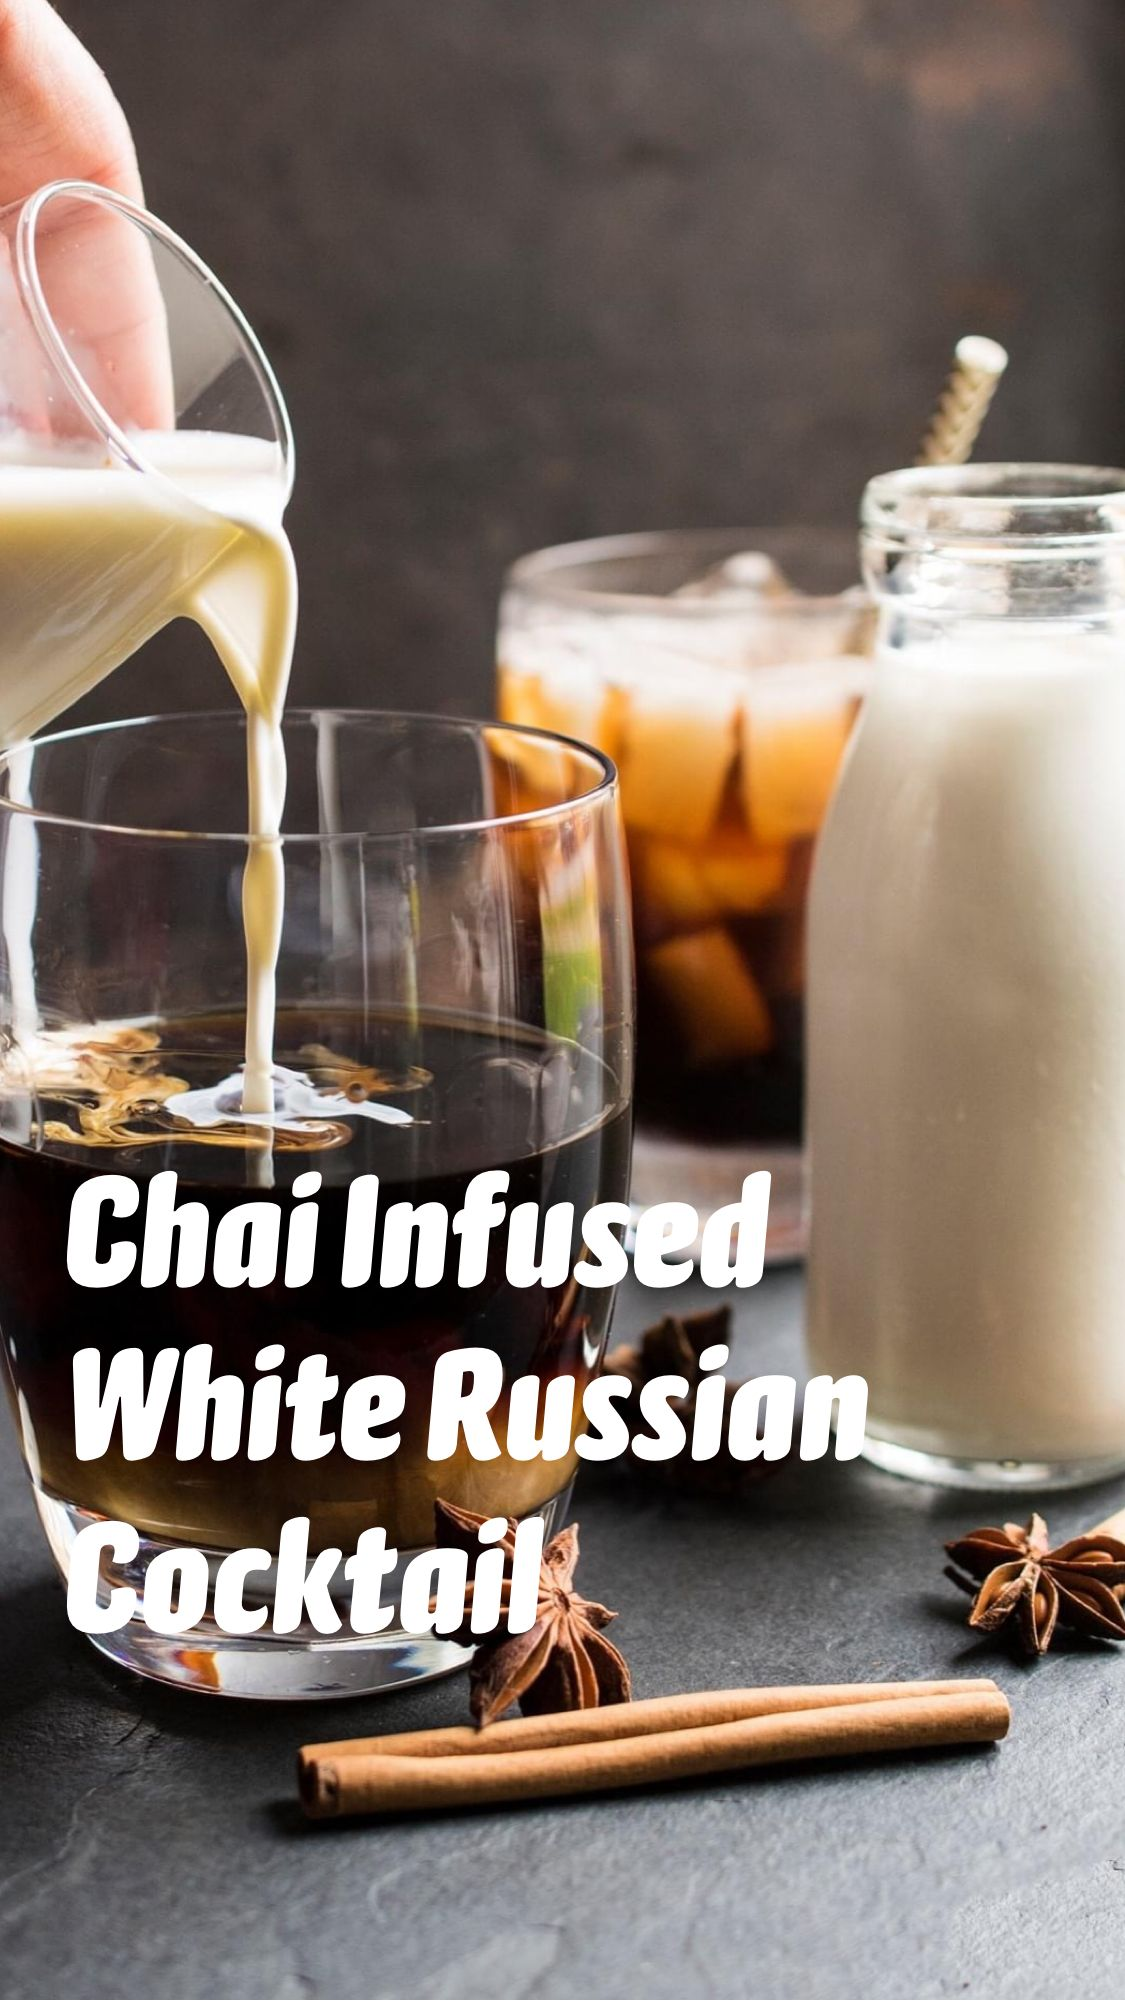 Chai Infused White Russian Cocktail